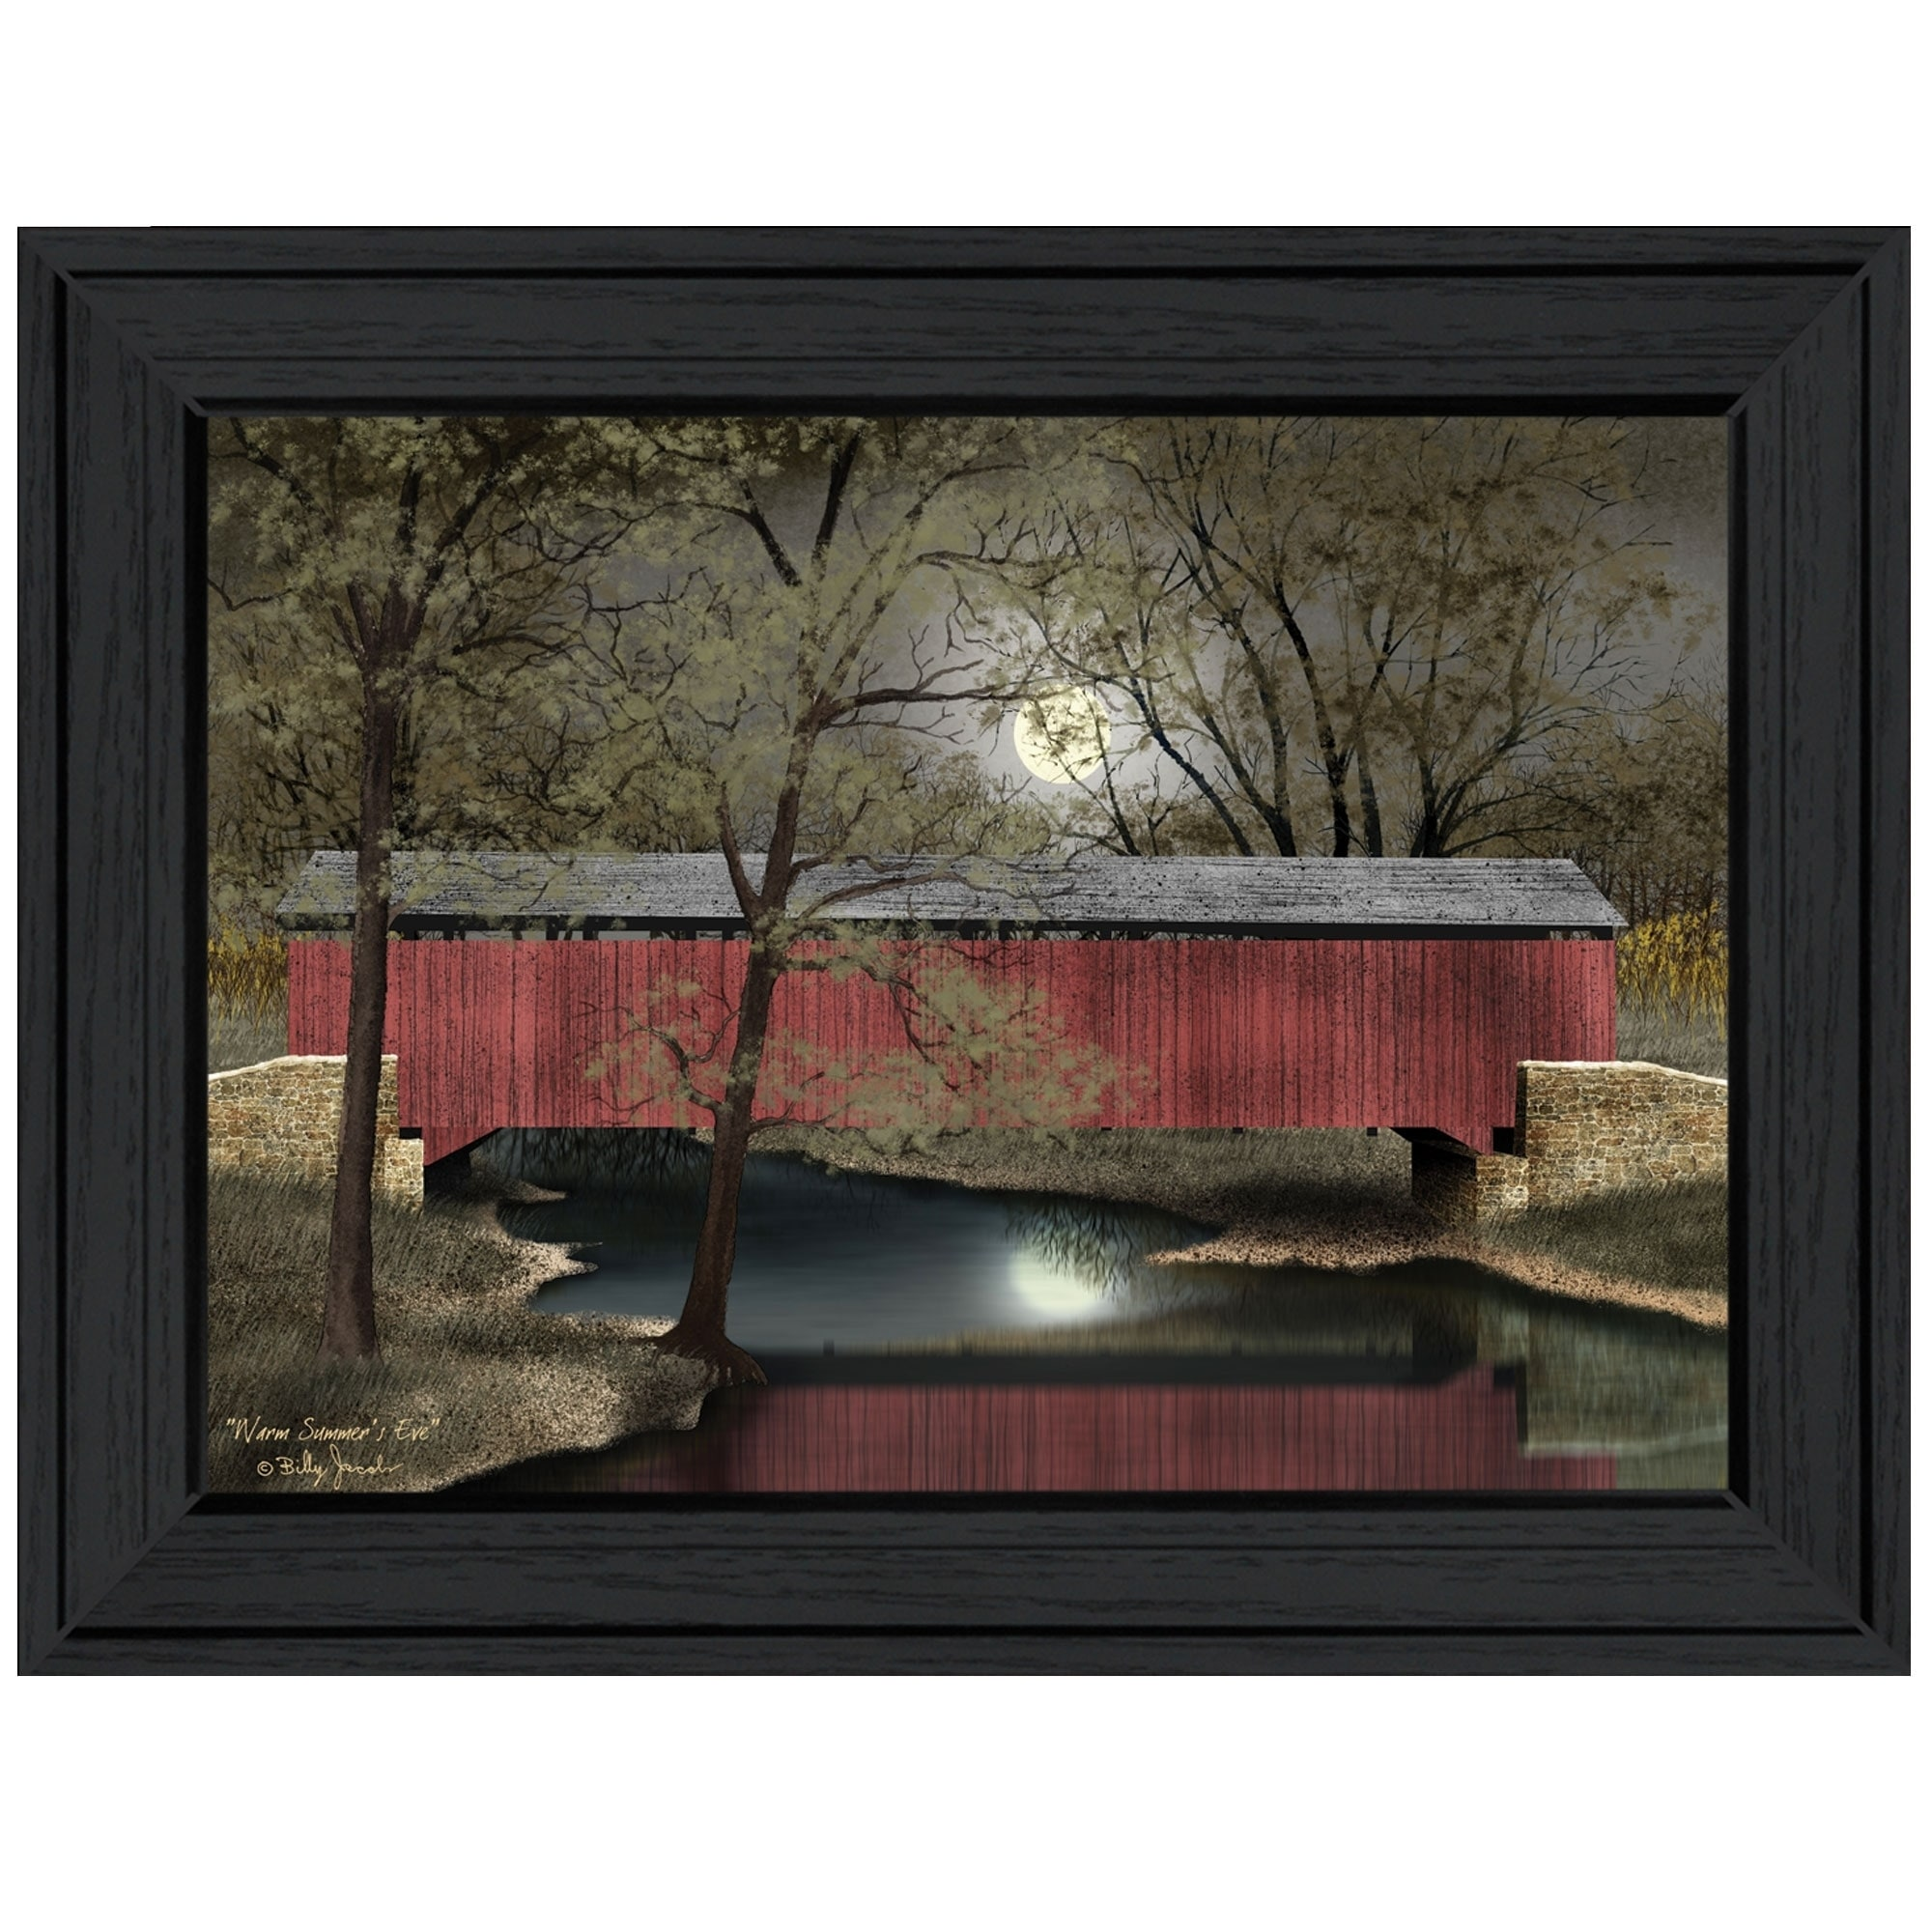 """/""""Warm Summer/'s Eve/"""" By Billy Jacobs Hangd Print Black"""